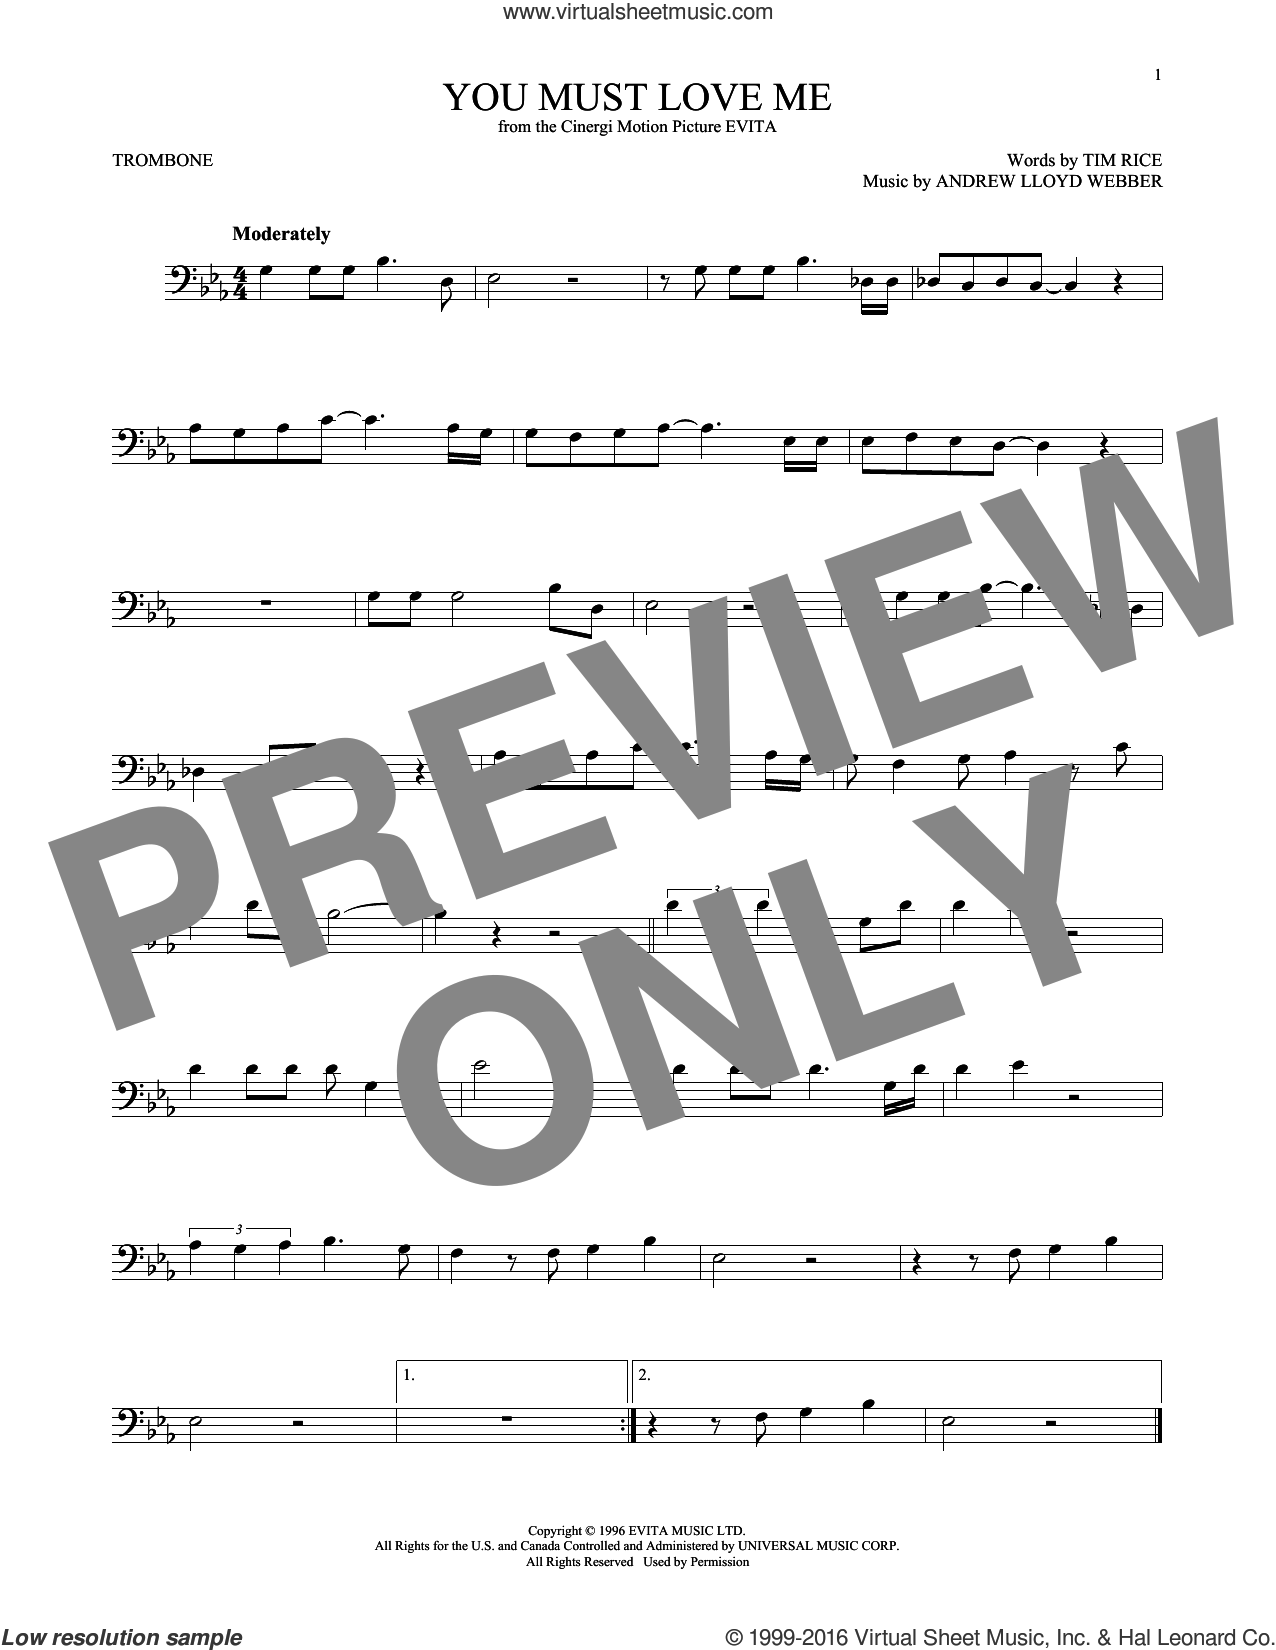 You Must Love Me sheet music for trombone solo by Andrew Lloyd Webber, Madonna and Tim Rice, intermediate skill level